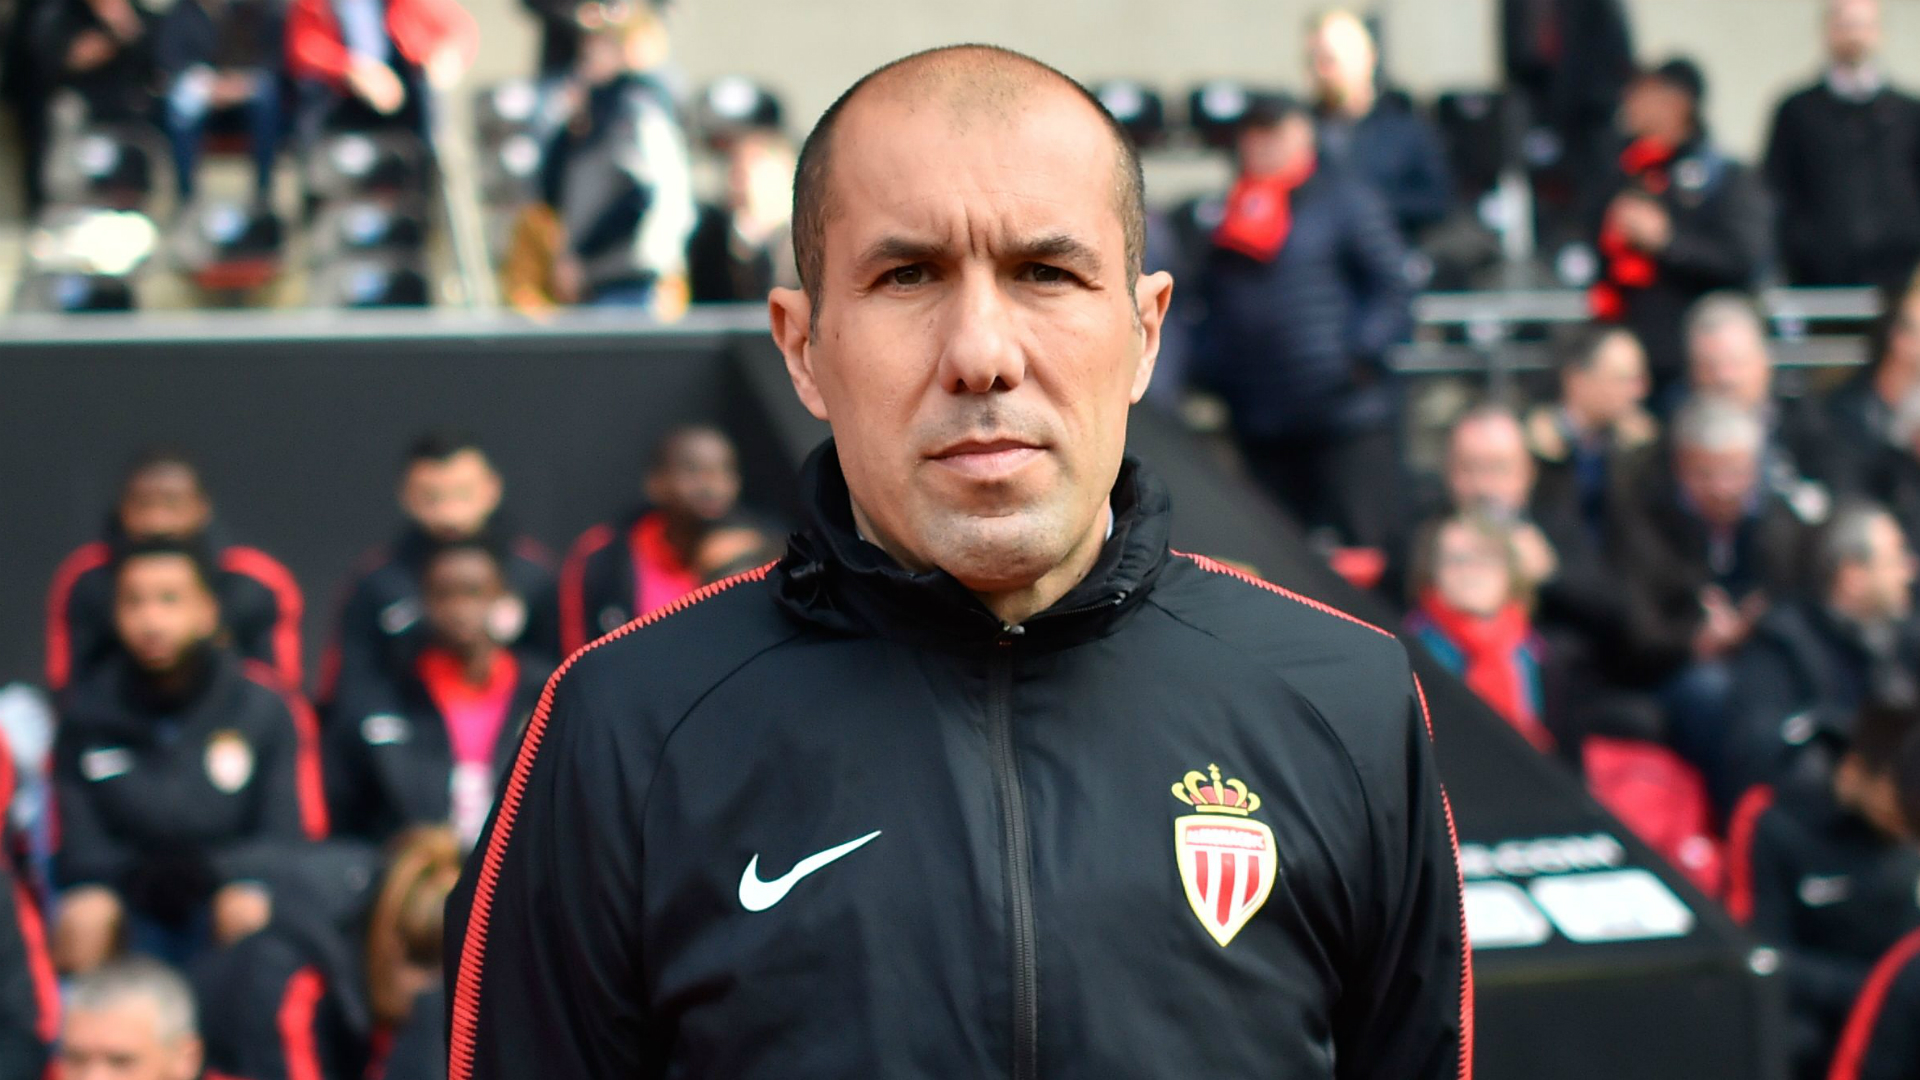 'Jardim one of the best coaches in the world' - Lopes talks up Arsenal managerial target